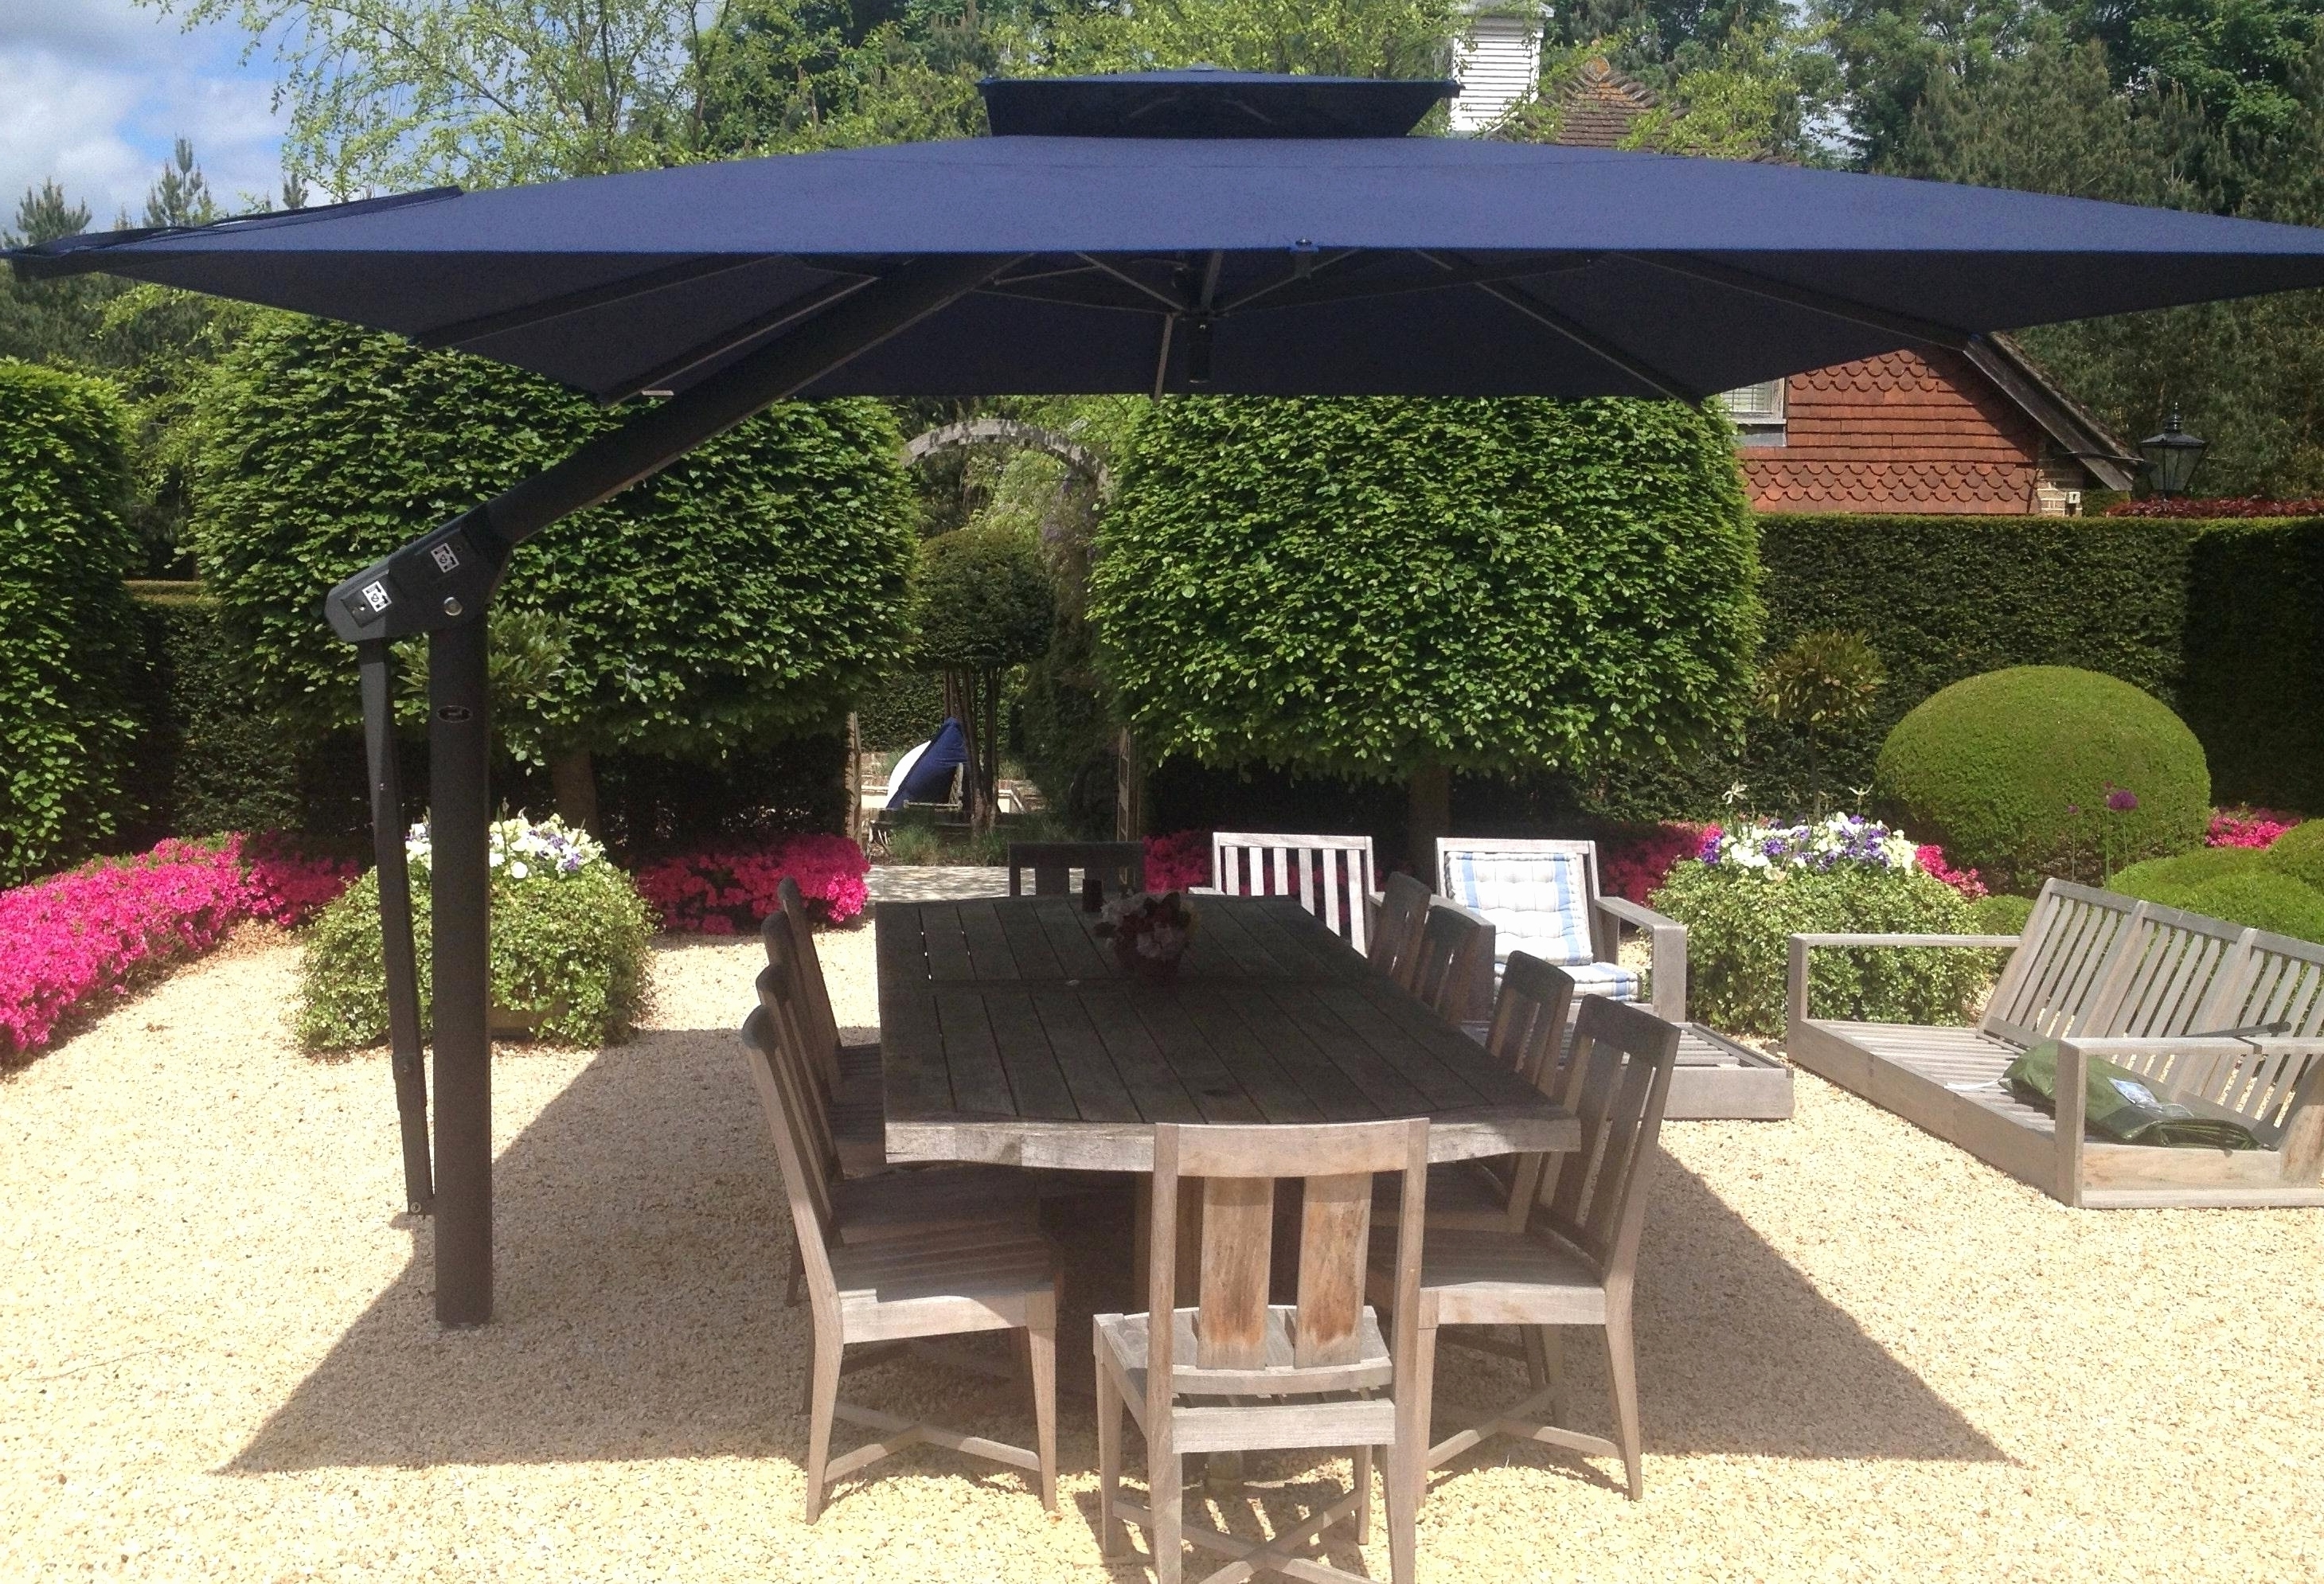 Small Patio Tables With Umbrellas Pertaining To Well Known Small Patio Umbrella Part 2 Outdoor Umbrellas – Theestatesga (View 15 of 20)